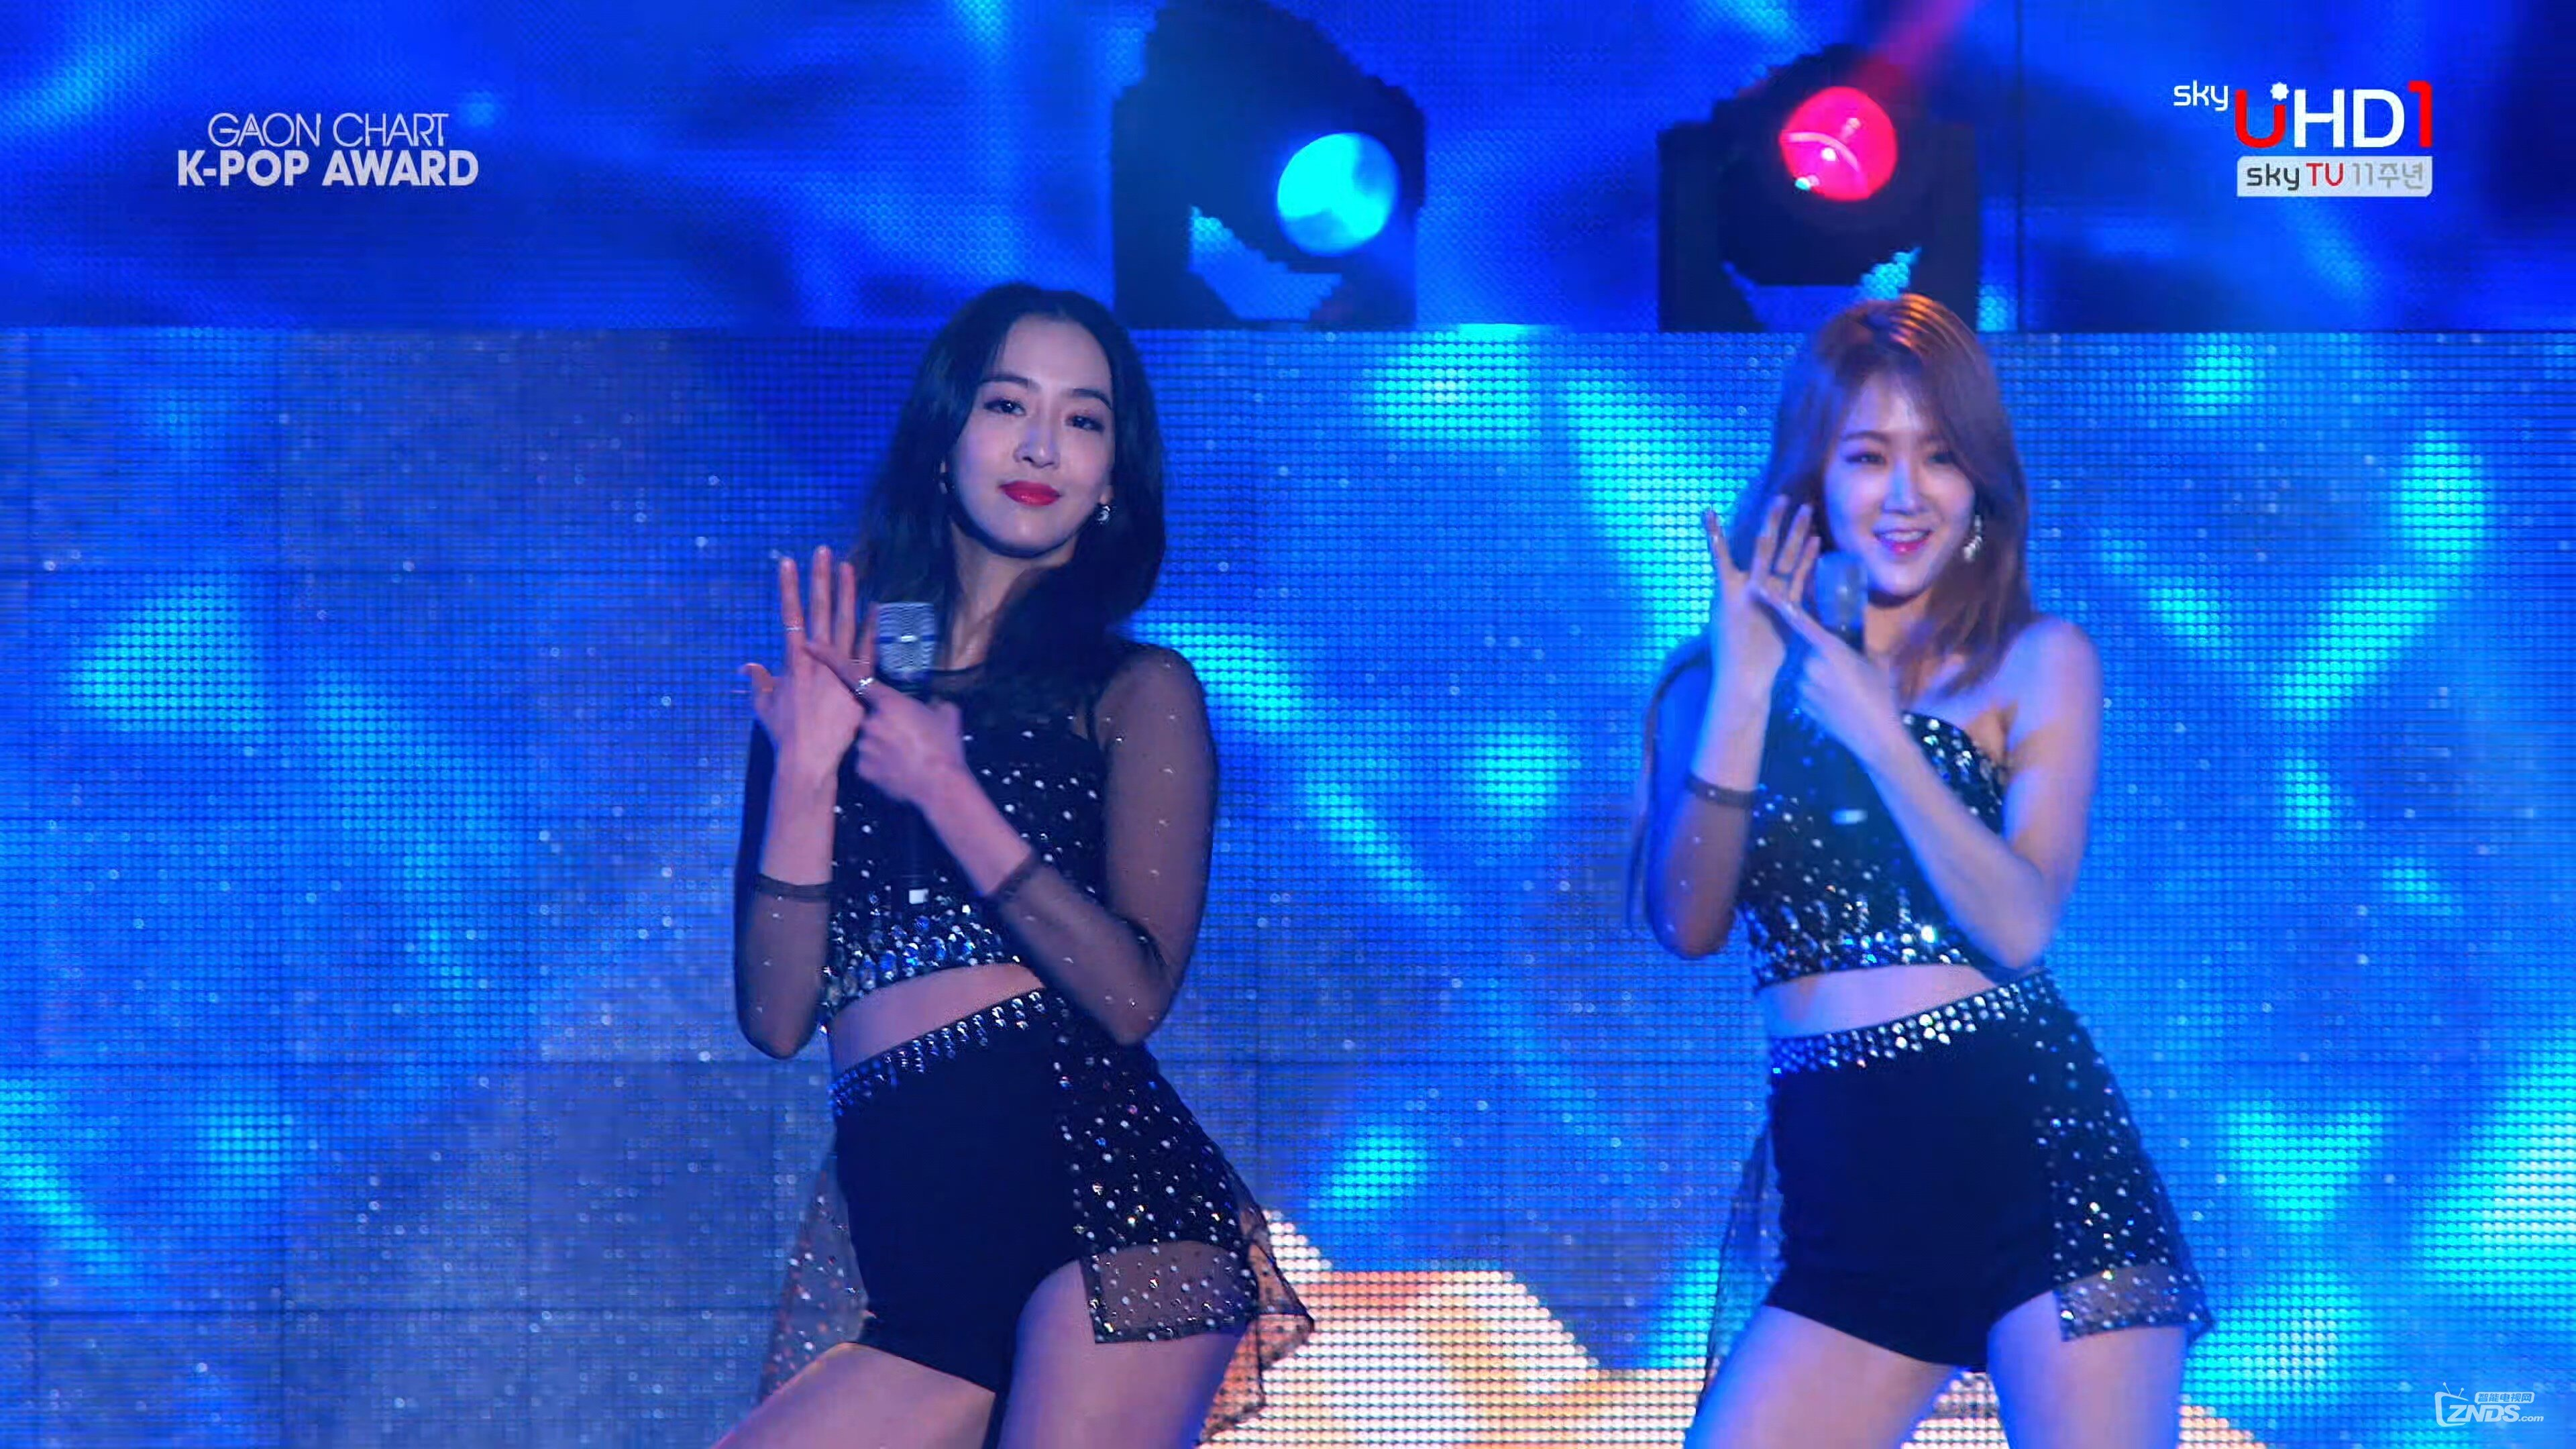 Sistar - Intro   I Swear   Touch My Body (150128 SkyUHD 4th Gaon Chart K-Pop Awa.jpg